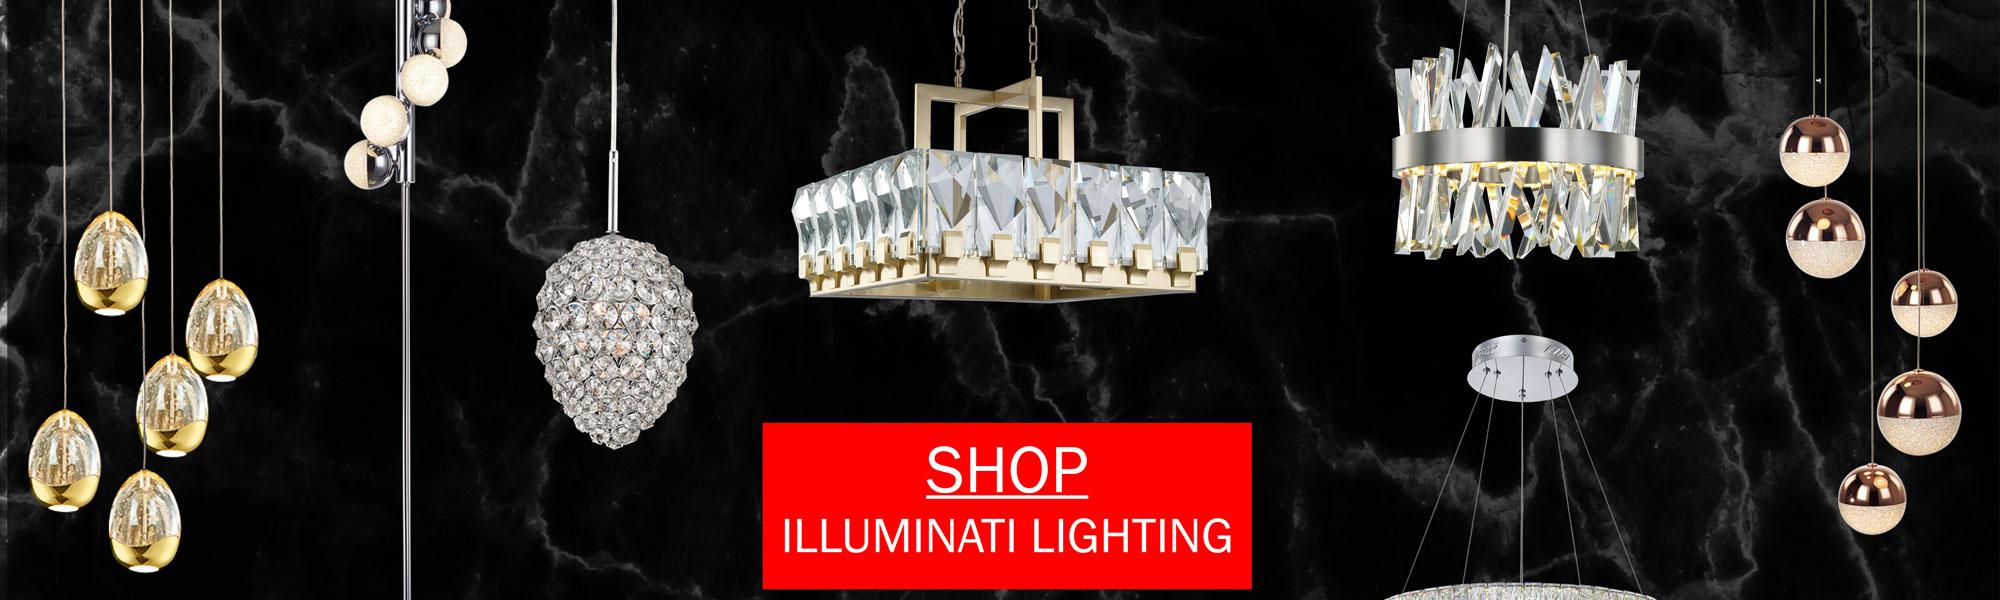 Illuminati Lighting